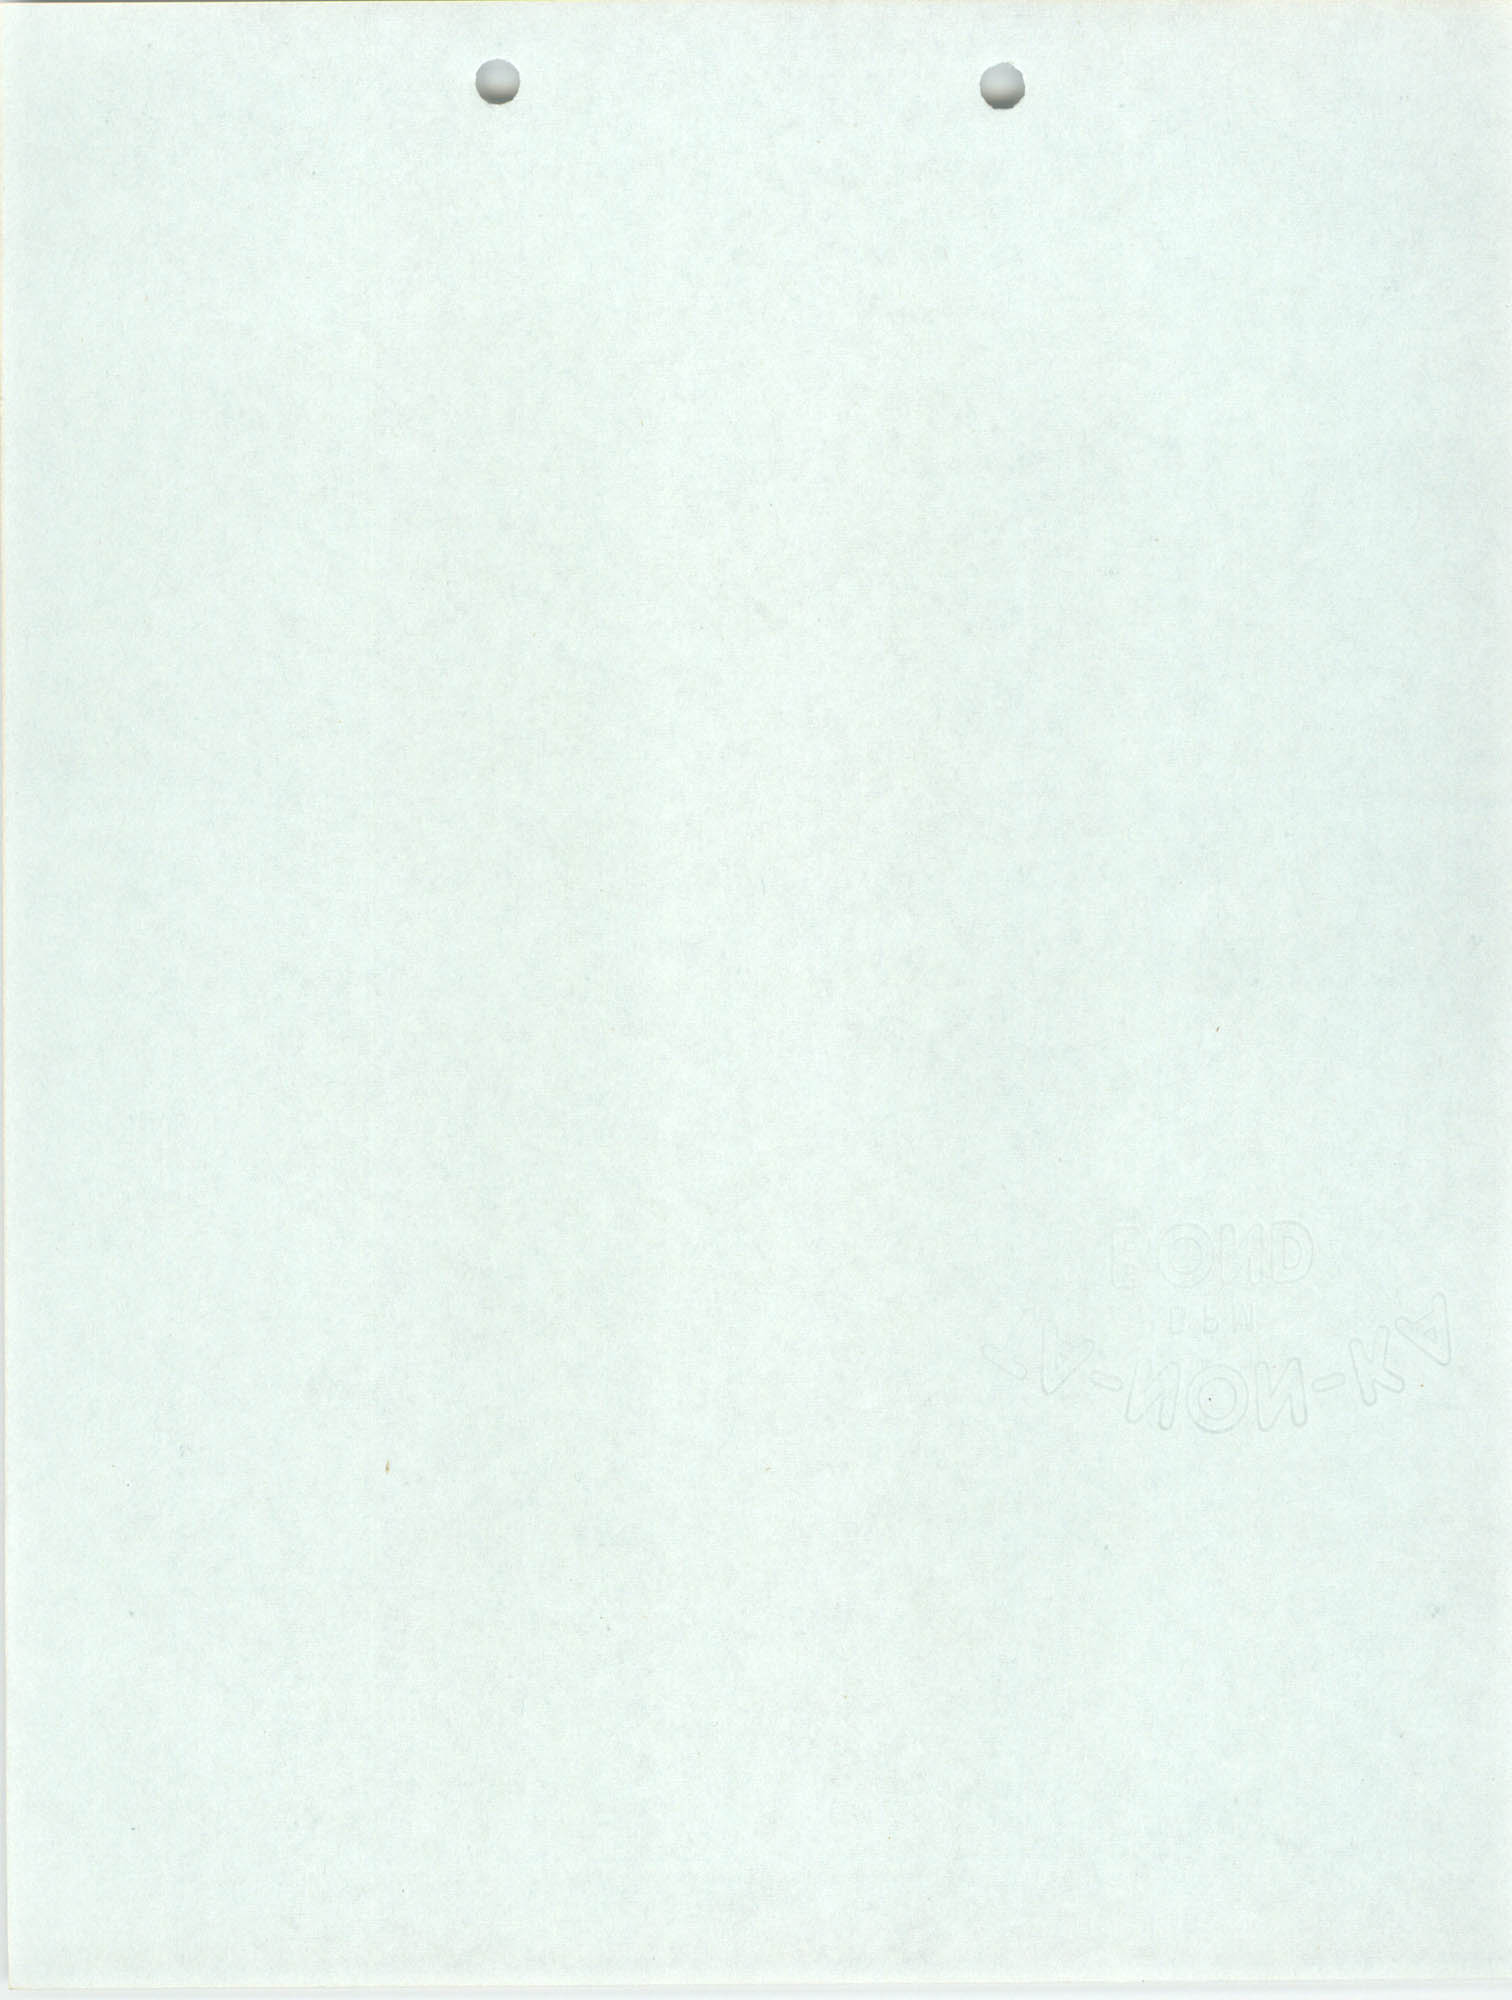 Blank Blue Page